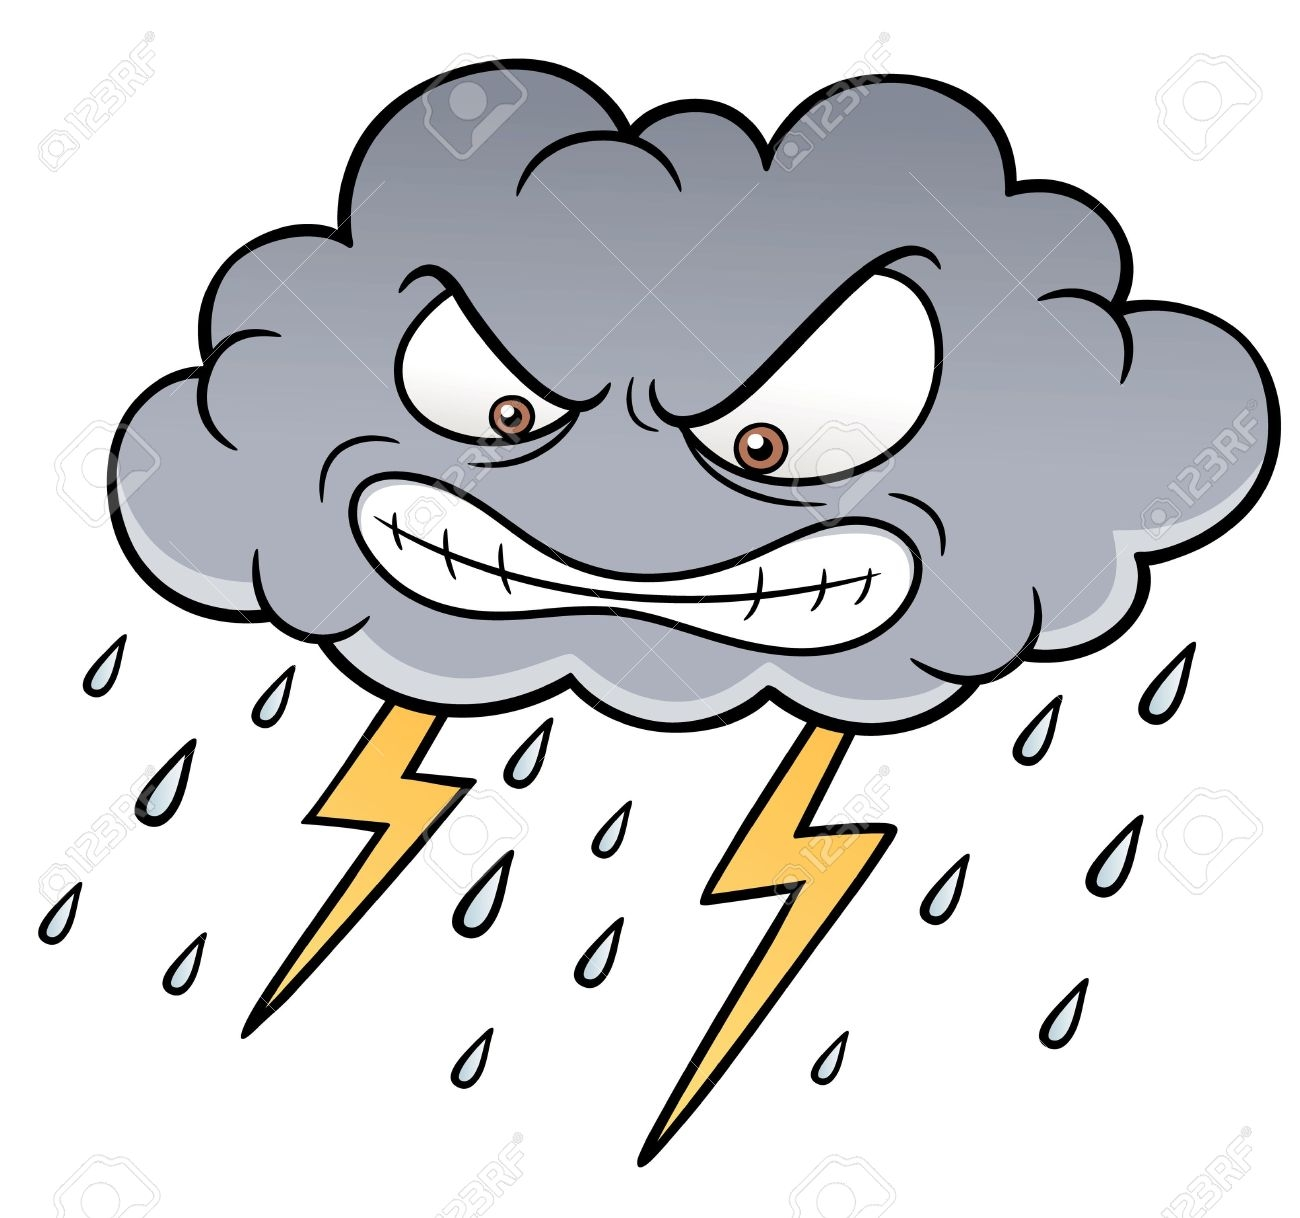 Stormy weather clipart.